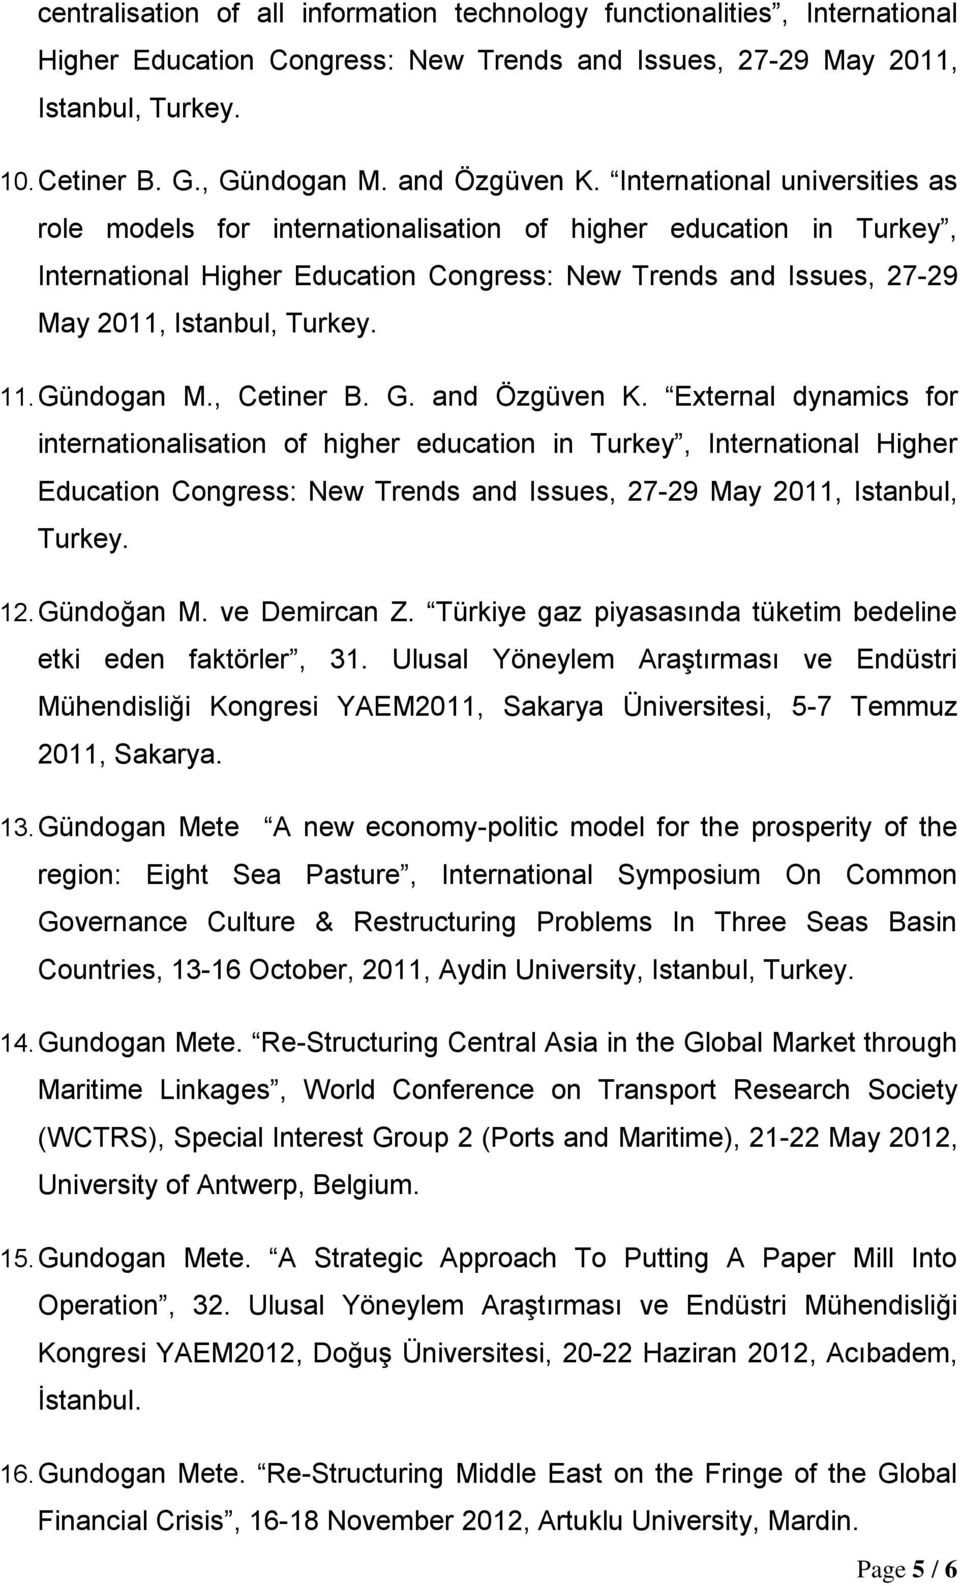 International universities as role models for internationalisation of higher education in Turkey, International Higher Education Congress: New Trends and Issues, 27-29 May 2011, Istanbul, Turkey. 11.